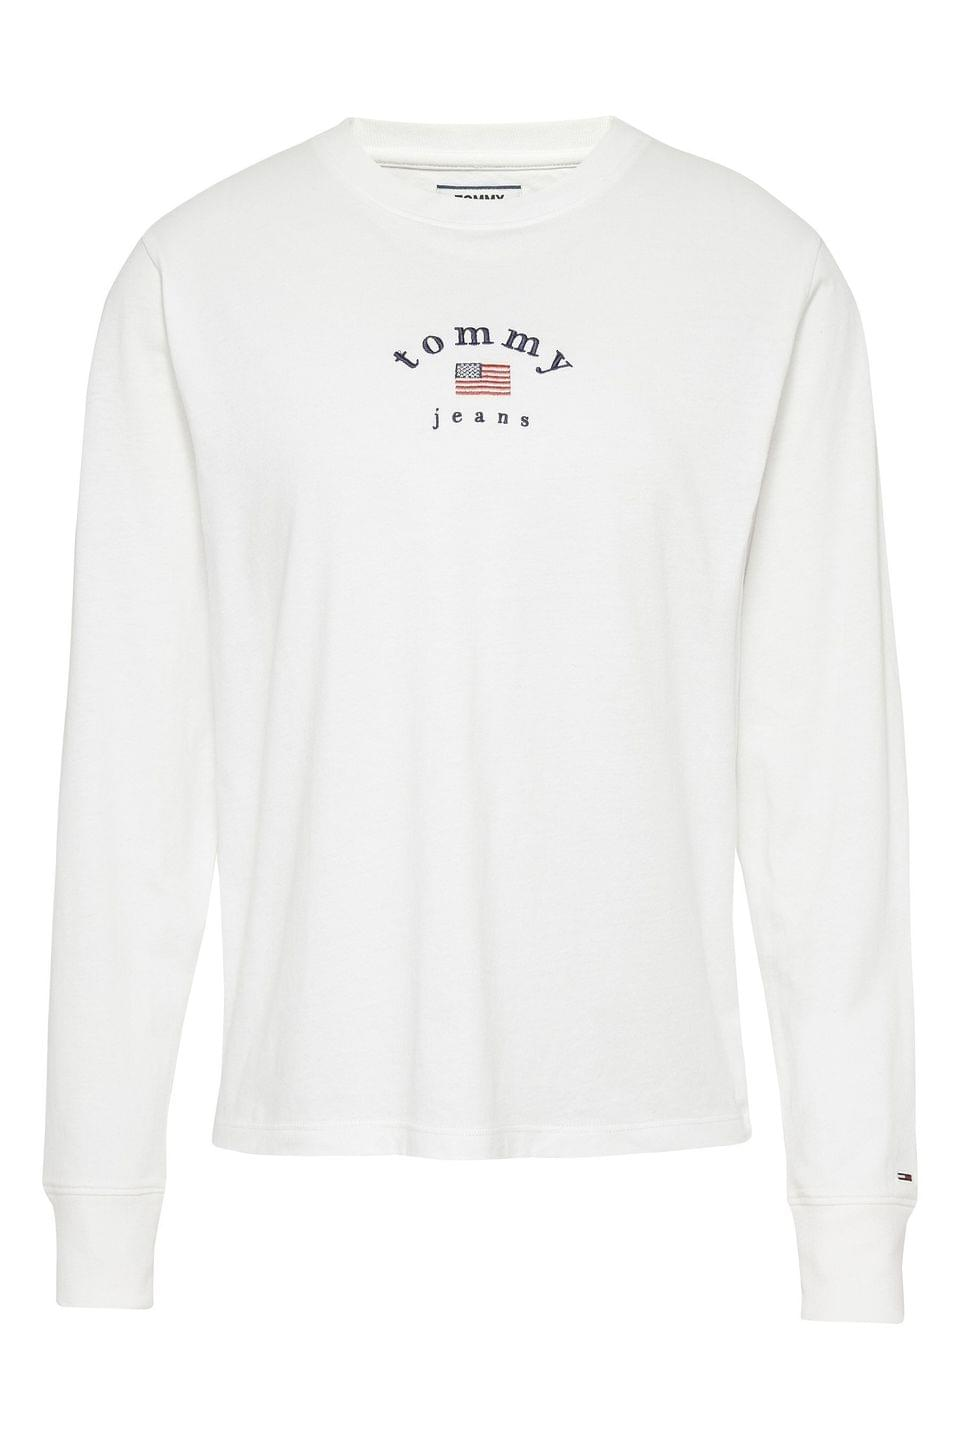 Women's Tommy Jeans White Americana Long Sleeve T-Shirt